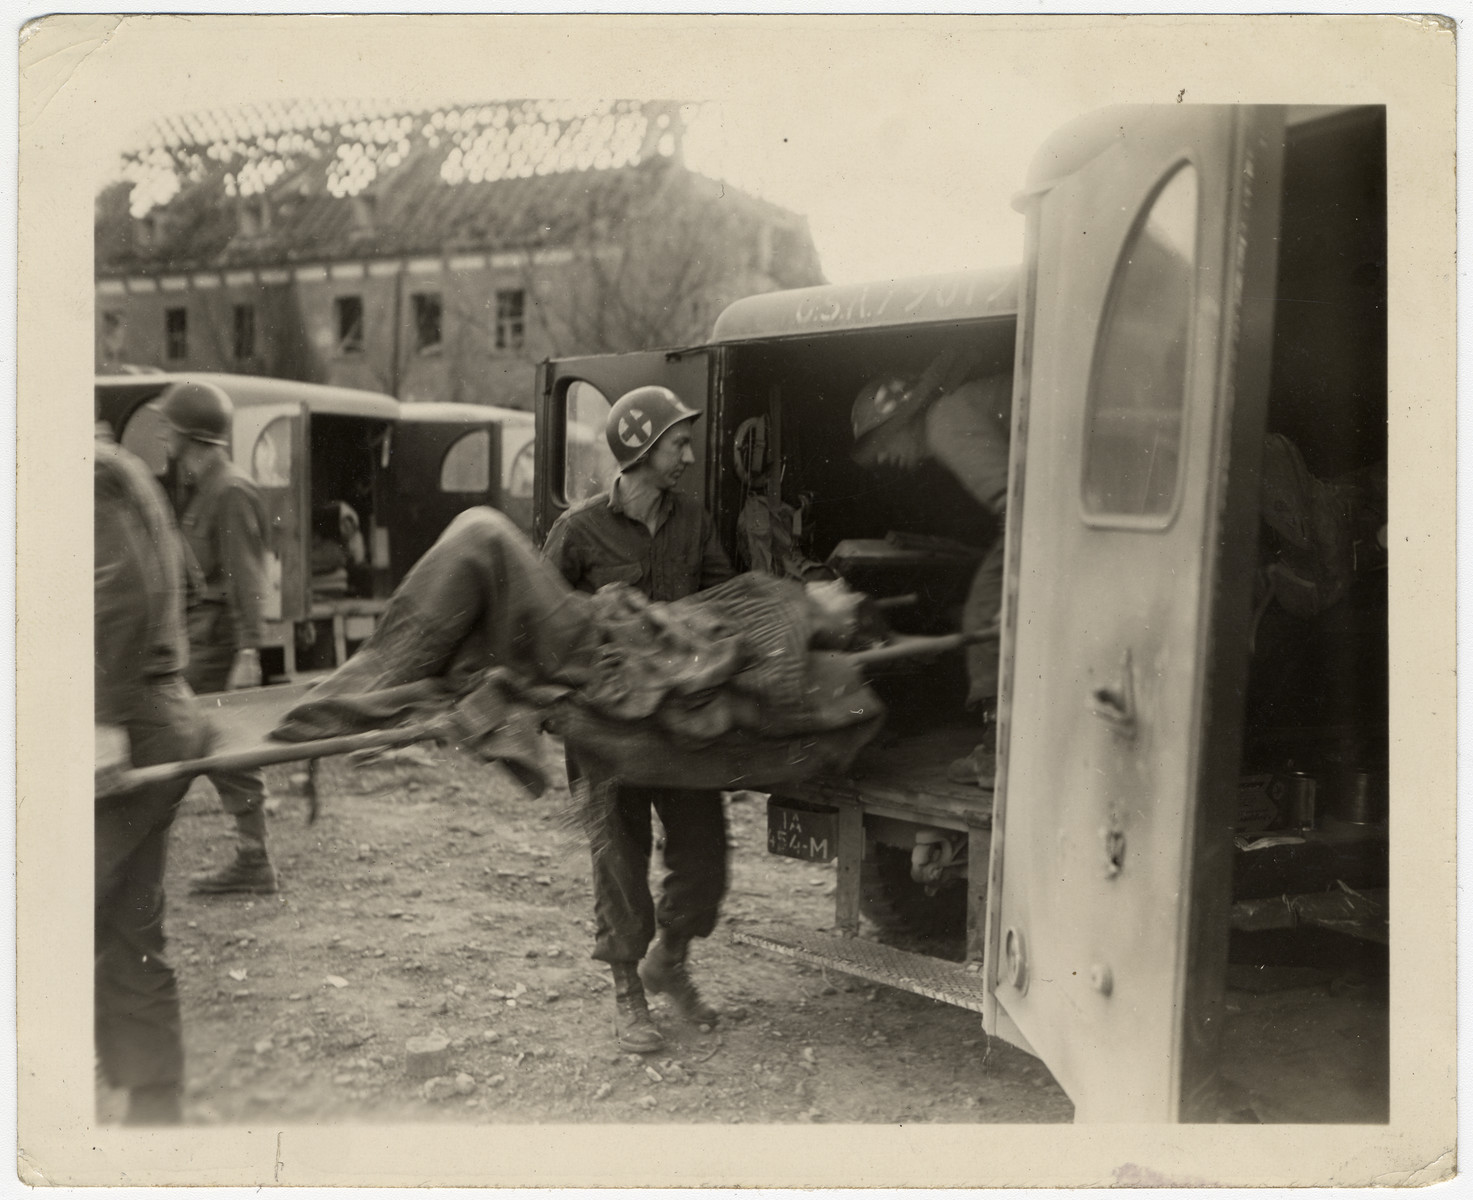 American medics evacuate survivors from the Nordhausen concentration camp.